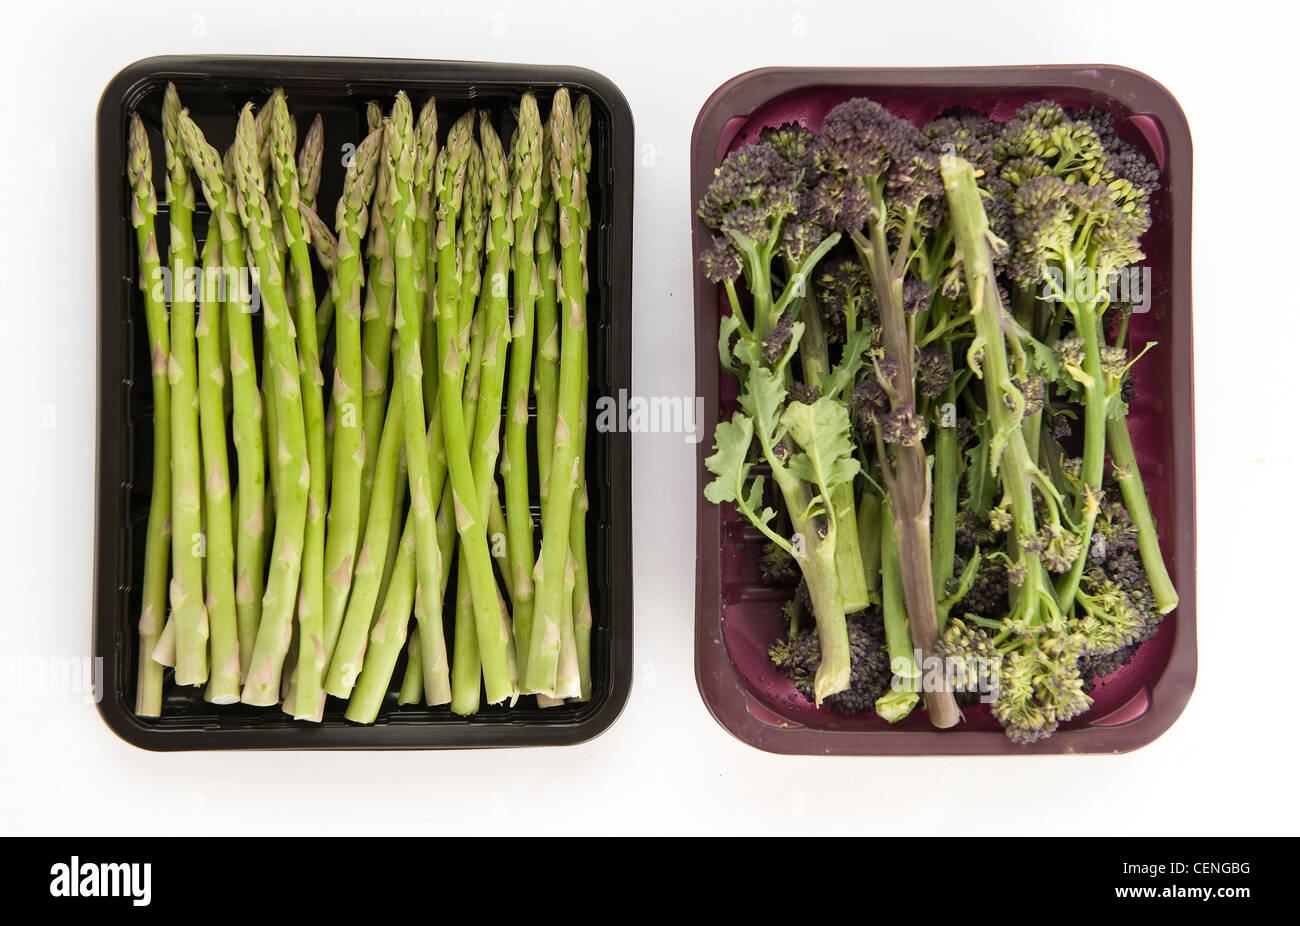 A still life image of asparagus and purple broccoli in black and purple plastic containers - Stock Image